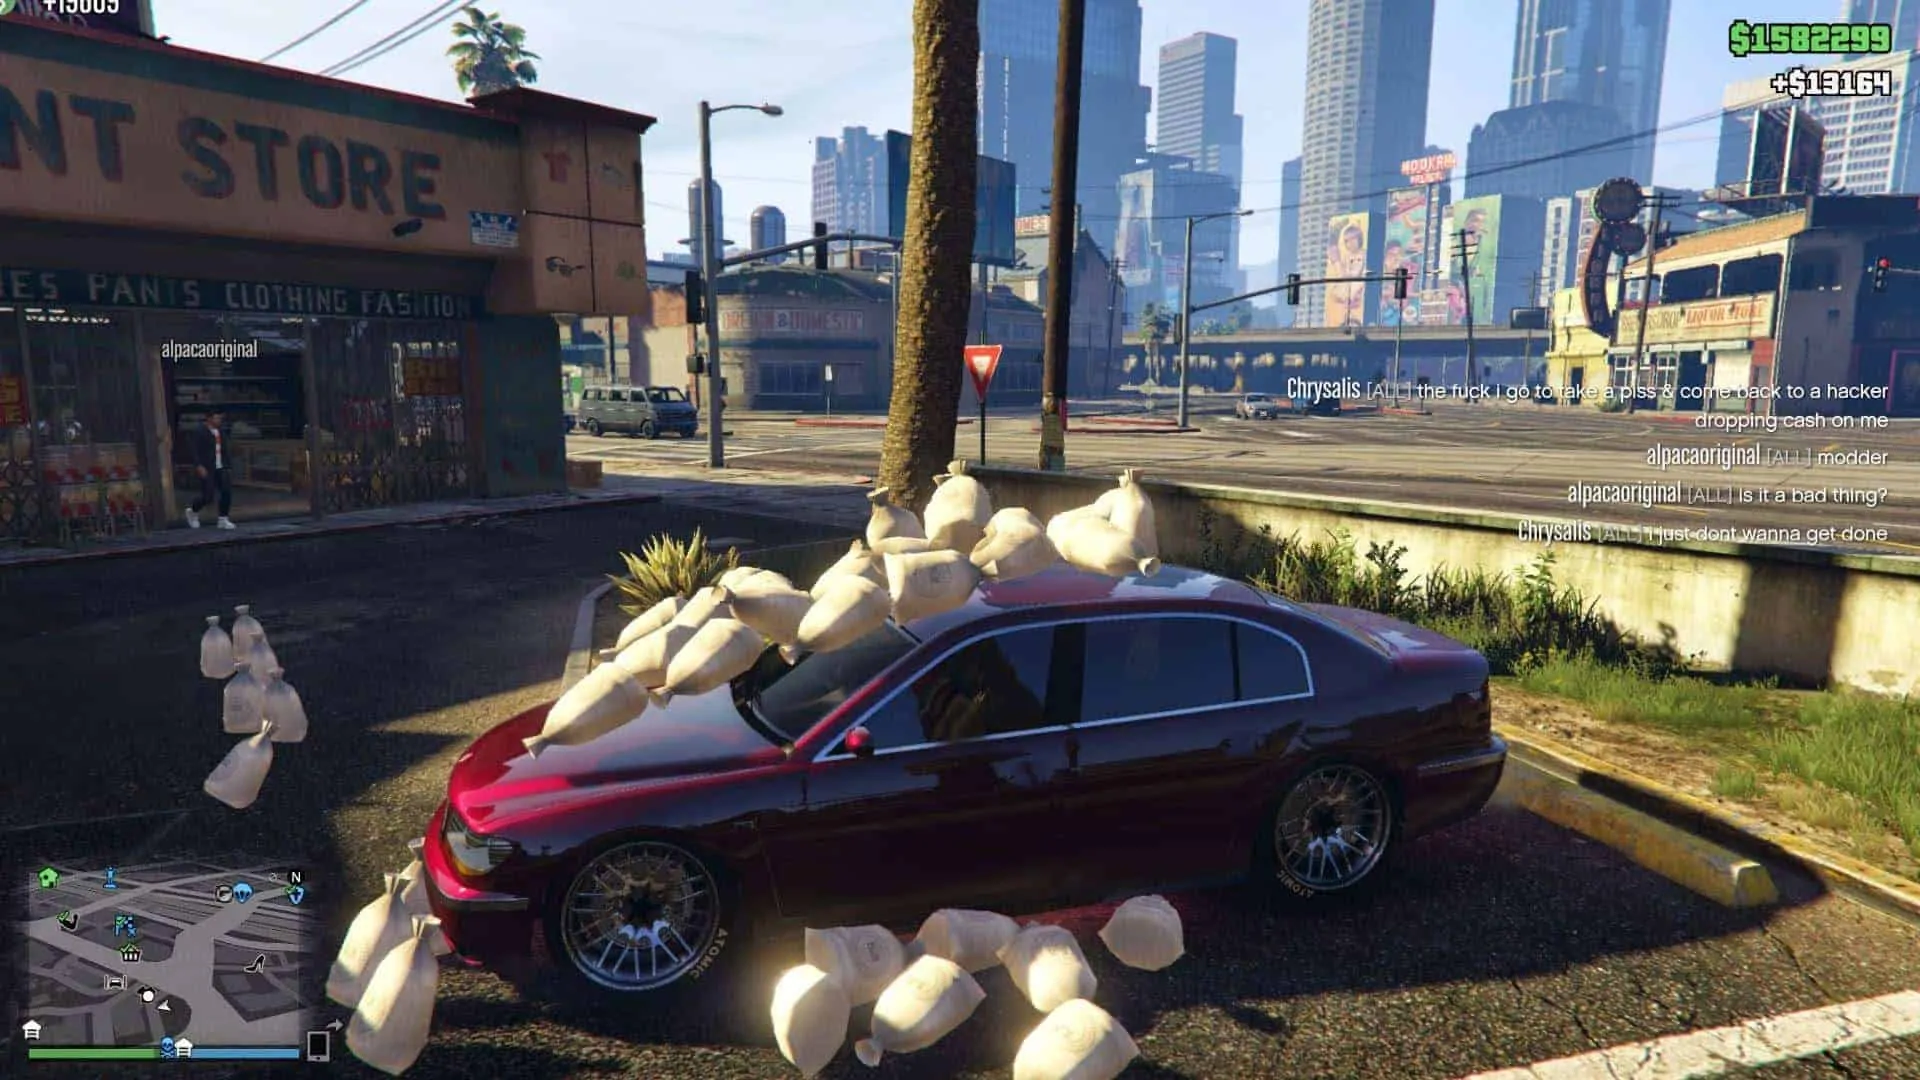 Cheats for GTA Online: 100% Truth On Cheats For Online - GTA